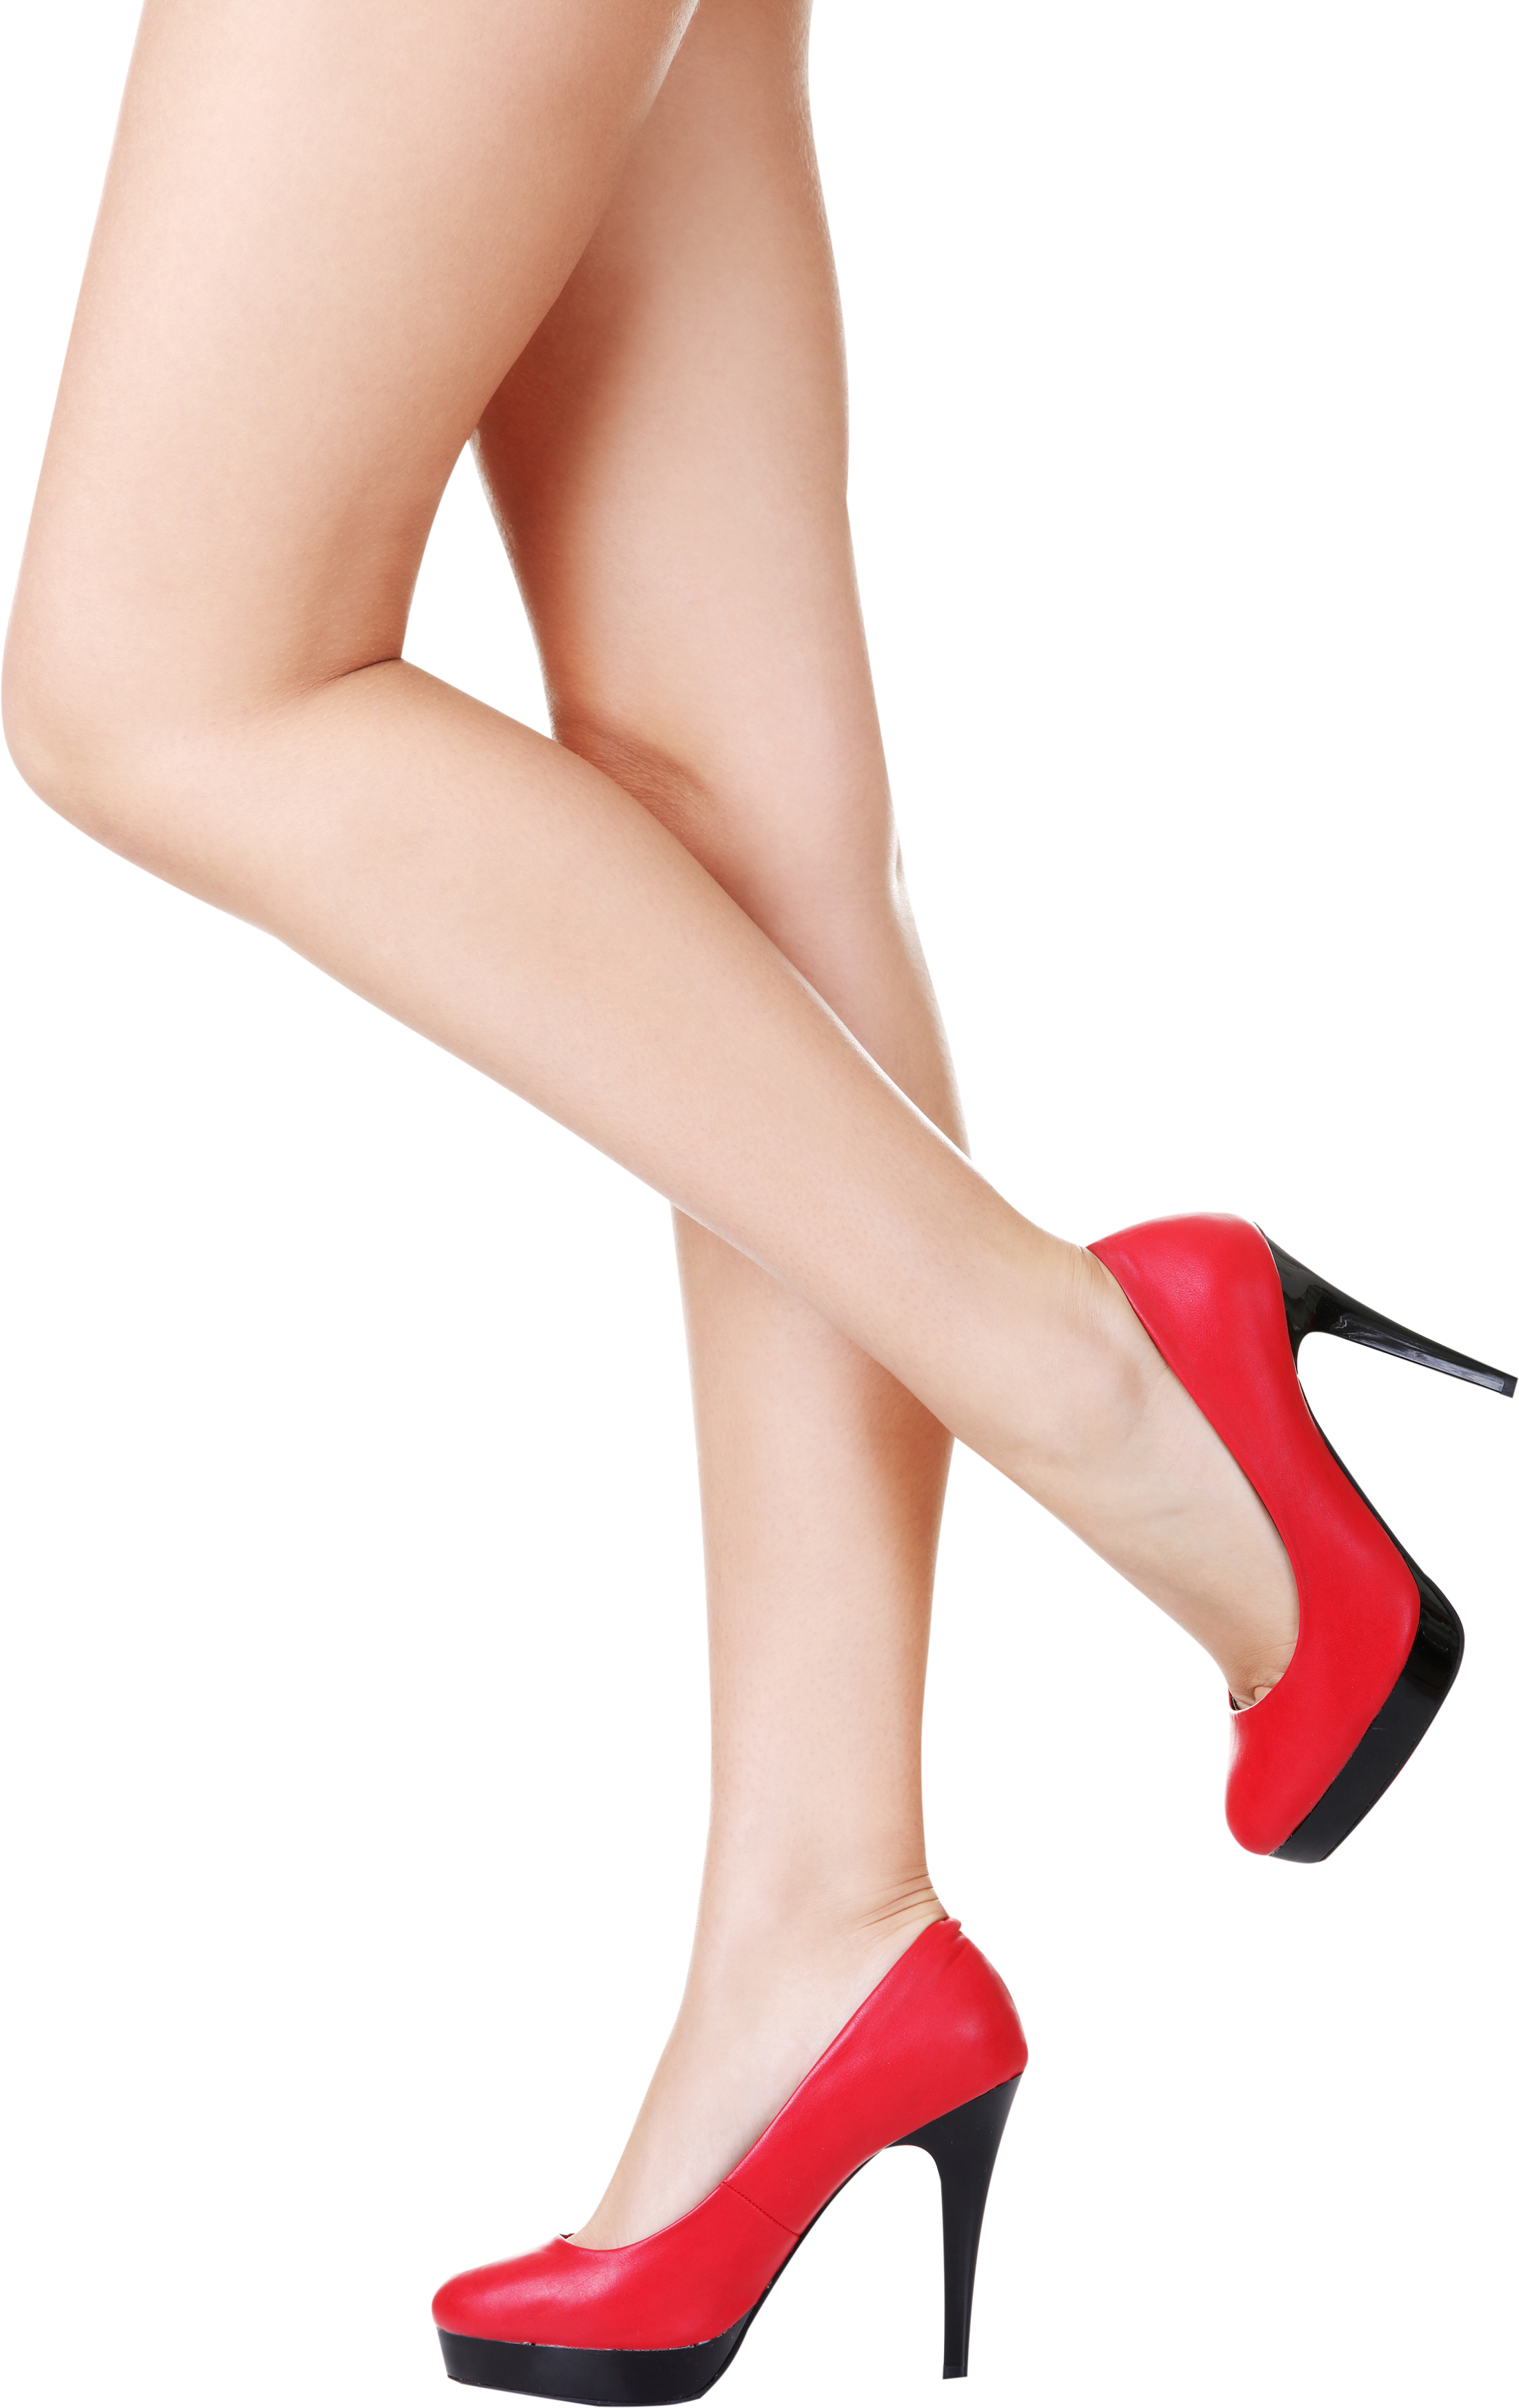 Images free download women. Woman legs png clipart free stock